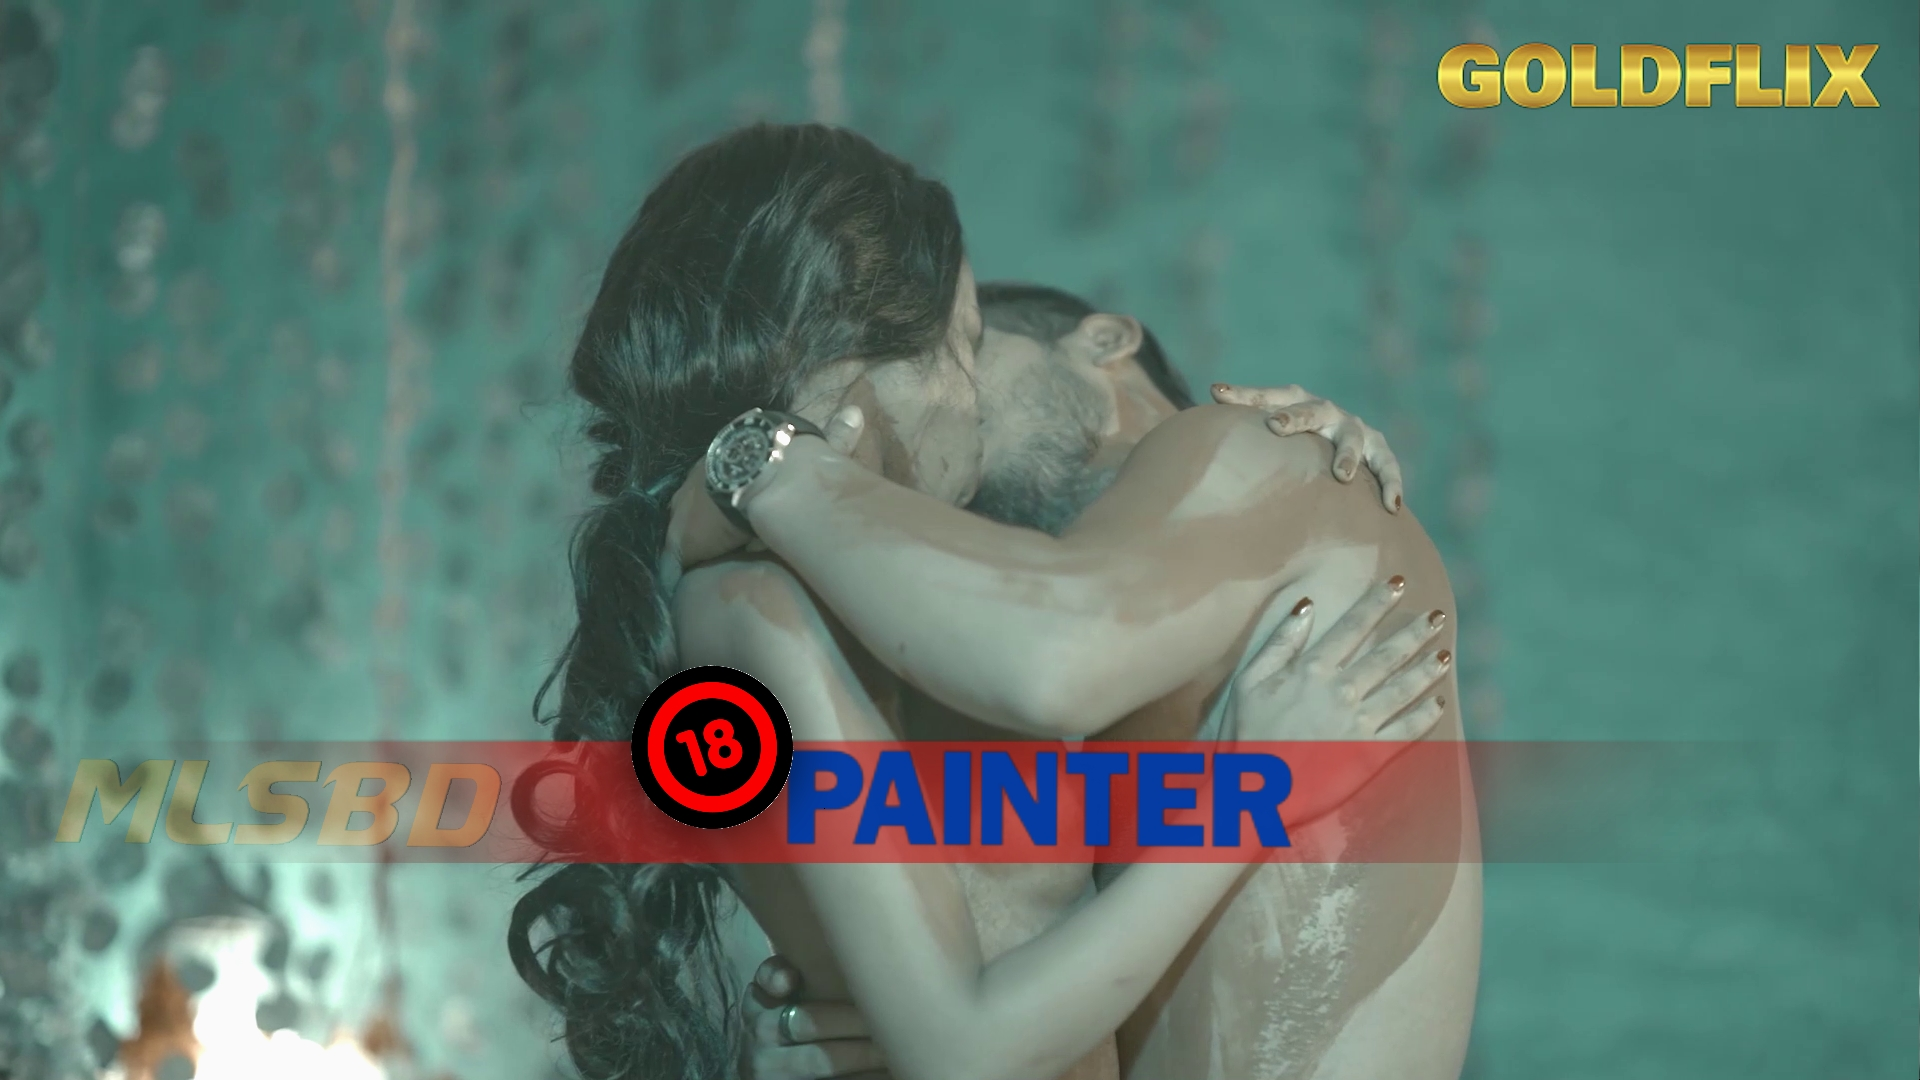 (18+)Painter (2021) Hindi Part 1 UnCensored WEB-DL  720P  x264 250MB  Download